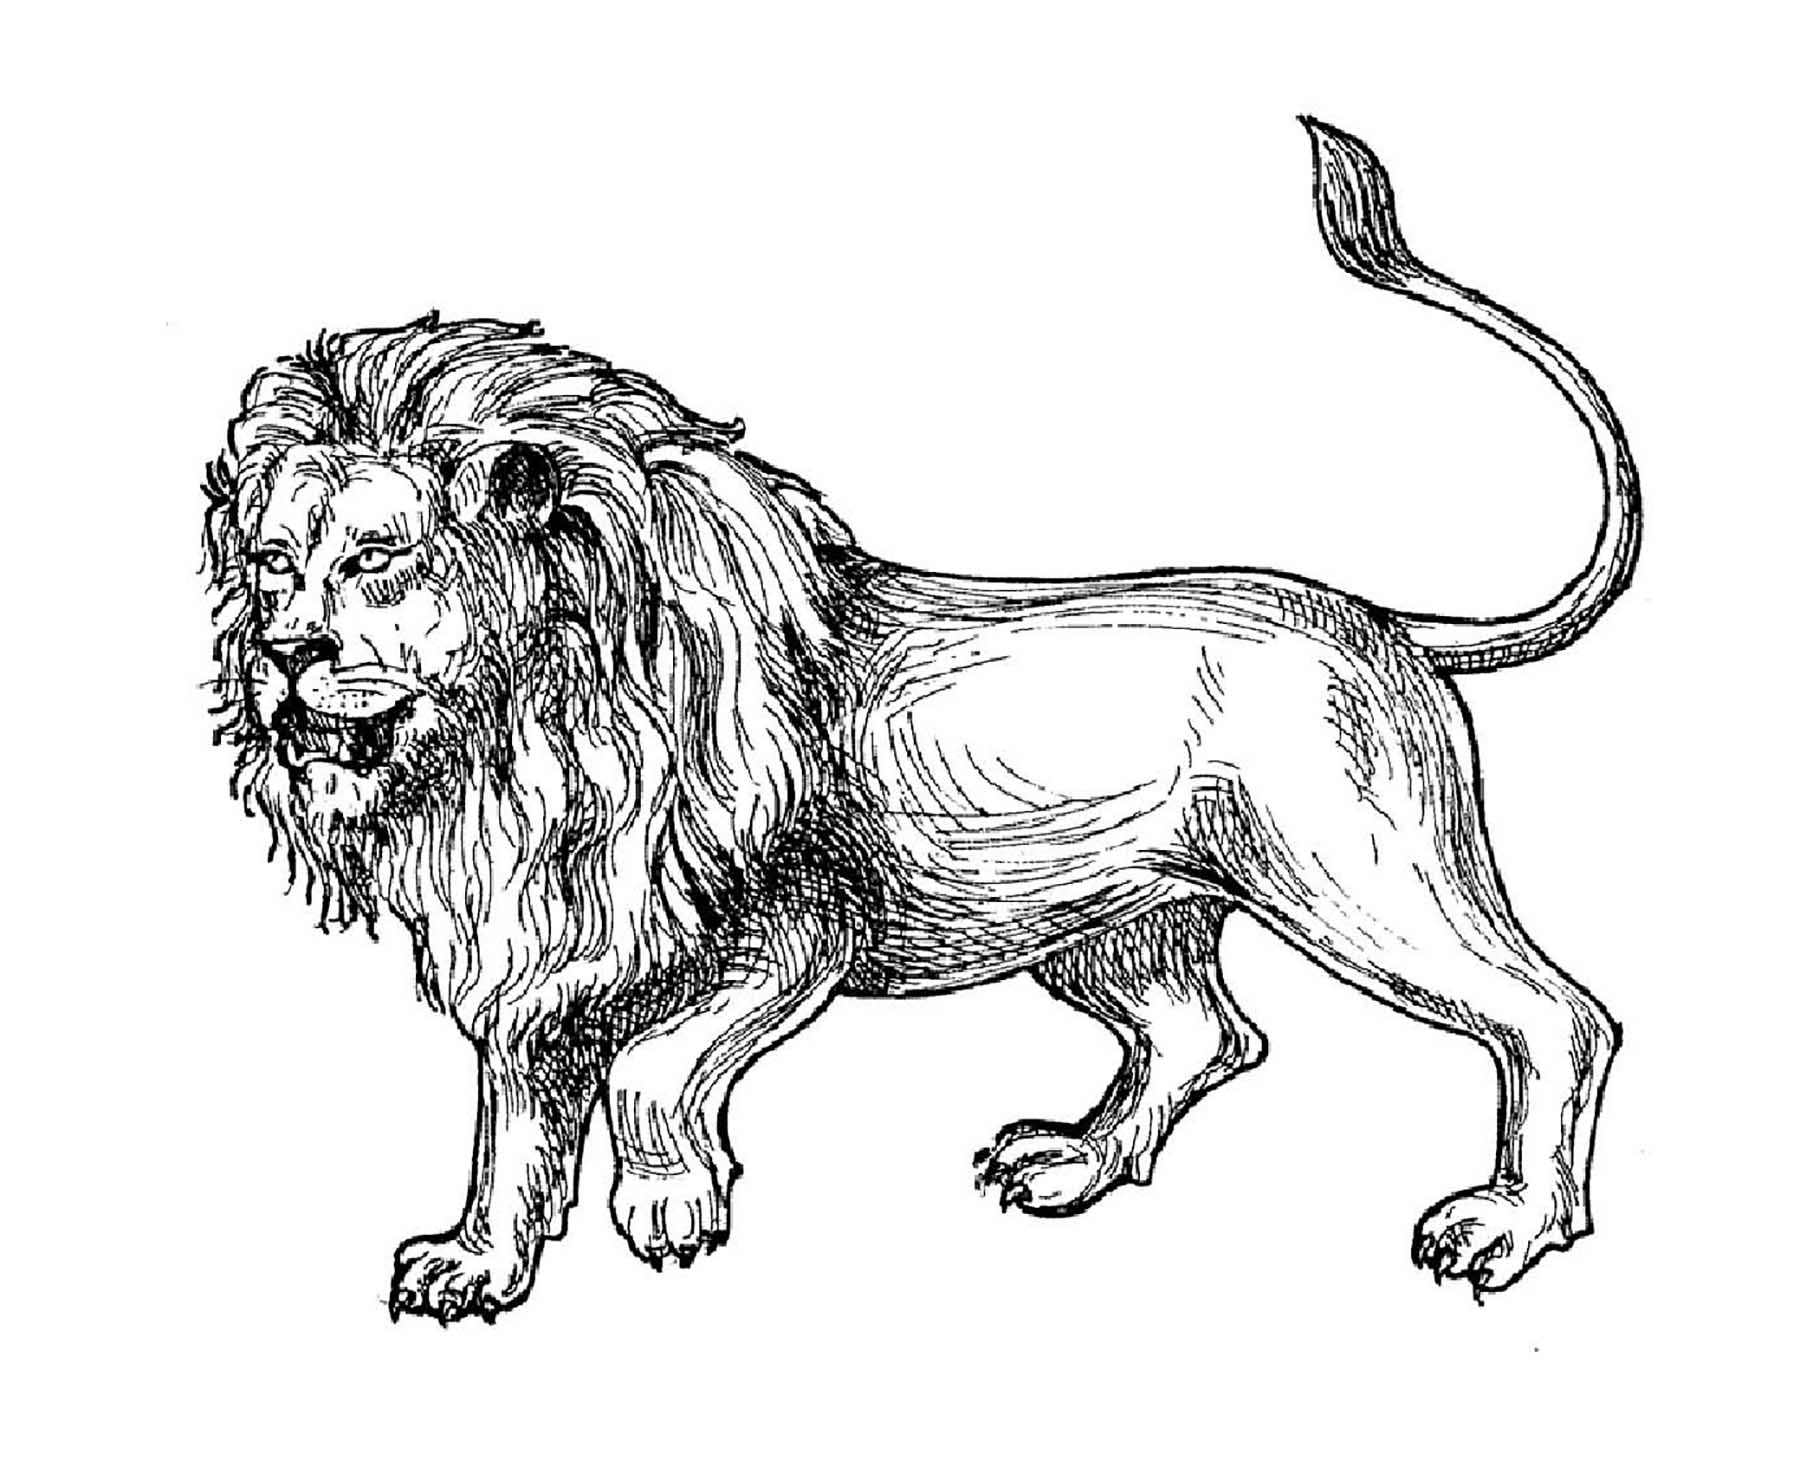 colour in lion tête de lion de face coloriage de lions coloriages in lion colour